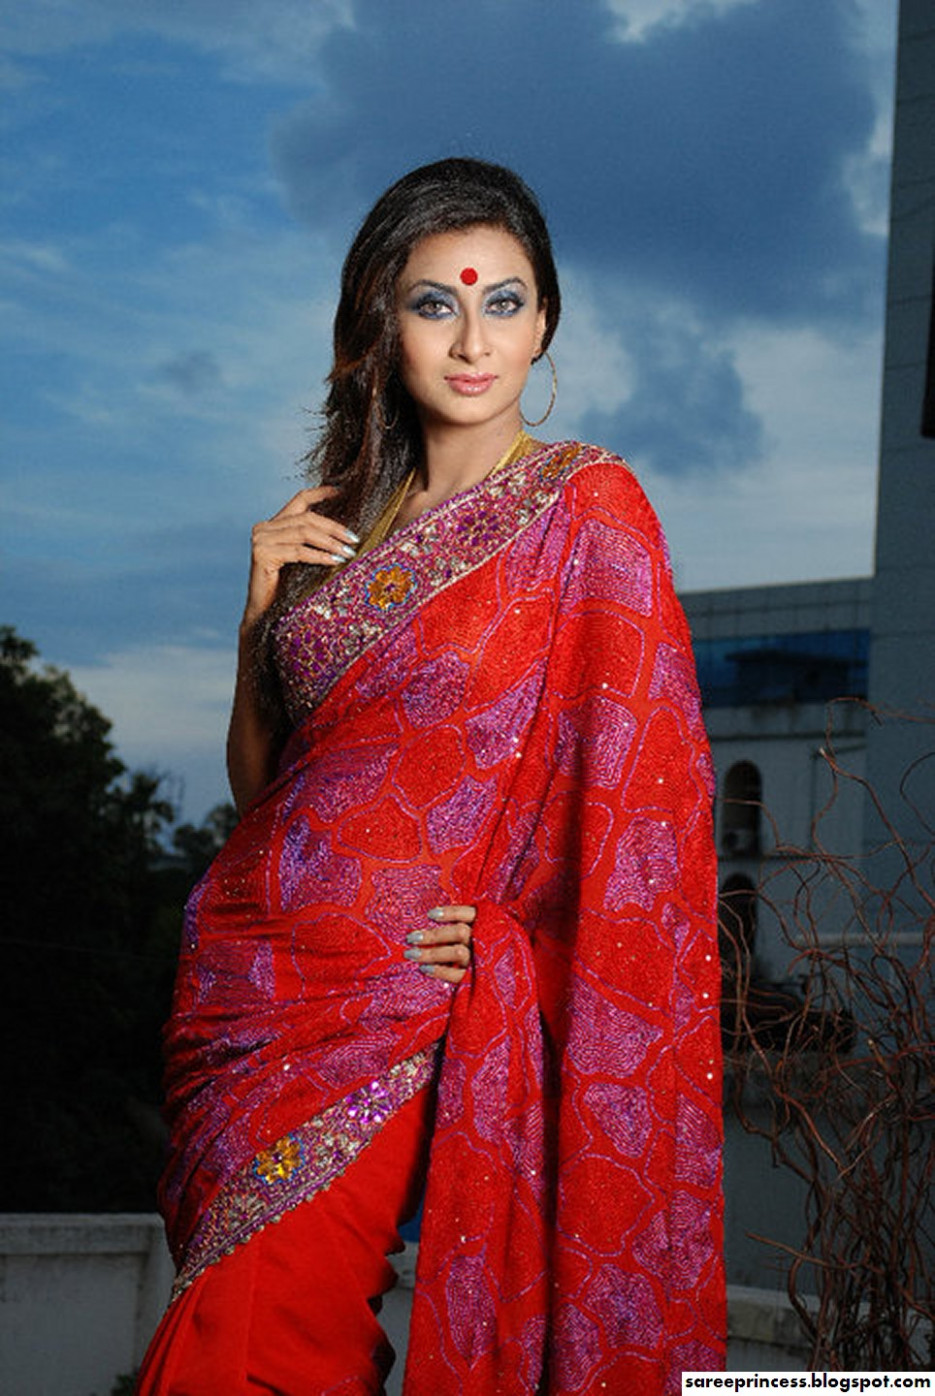 bangladeshi ramp models saree part:4 - wallpapers Gallery